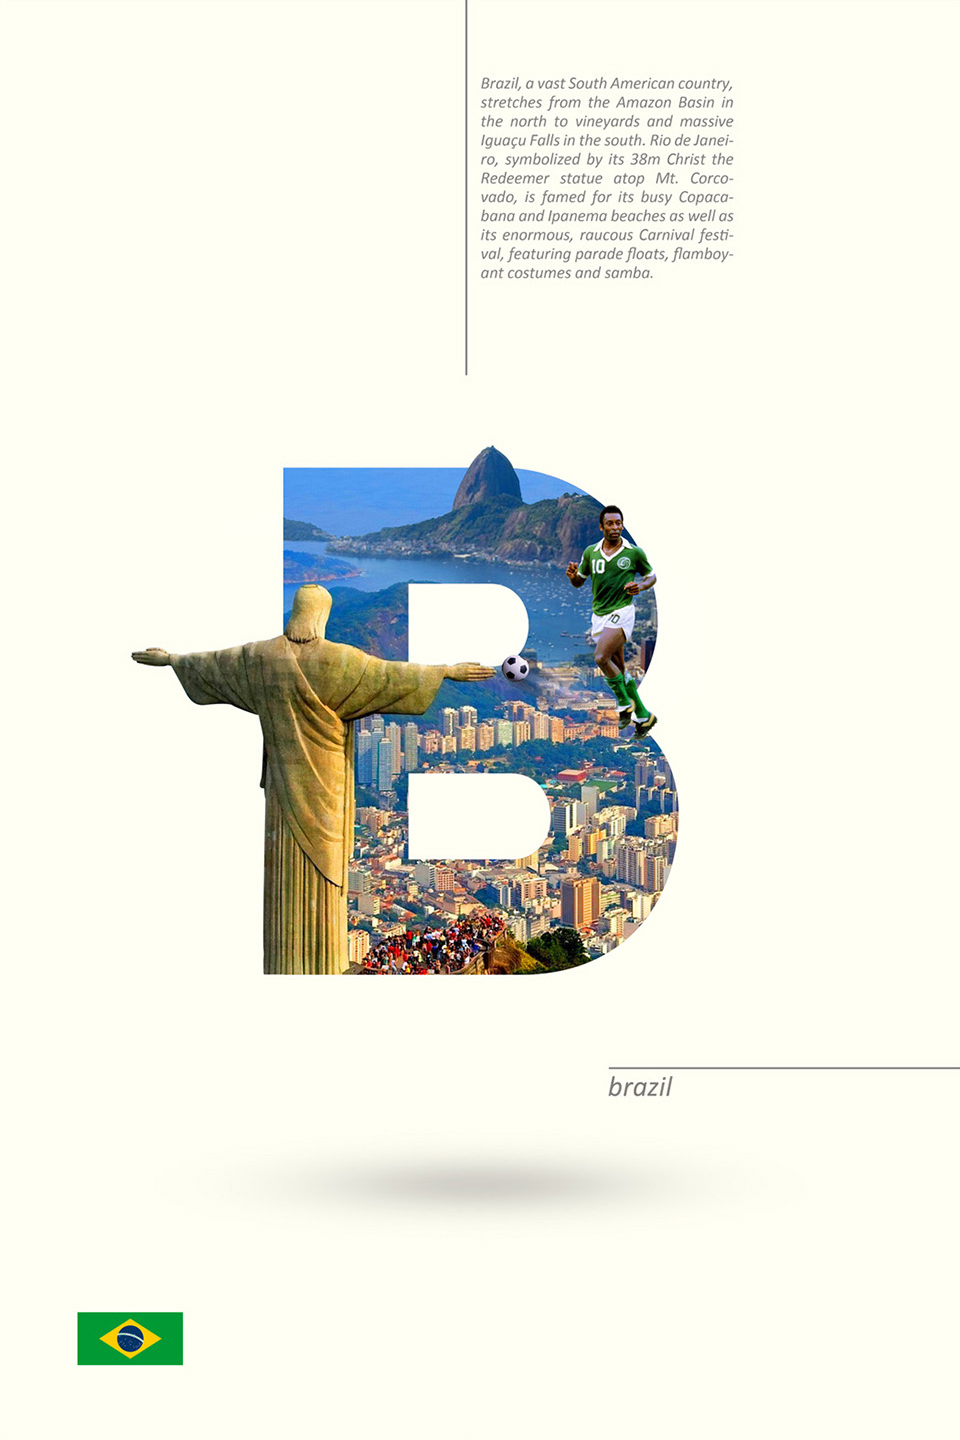 Beautiful Alphabet Series Of Countries And Their Iconic Landmarks - Brazil